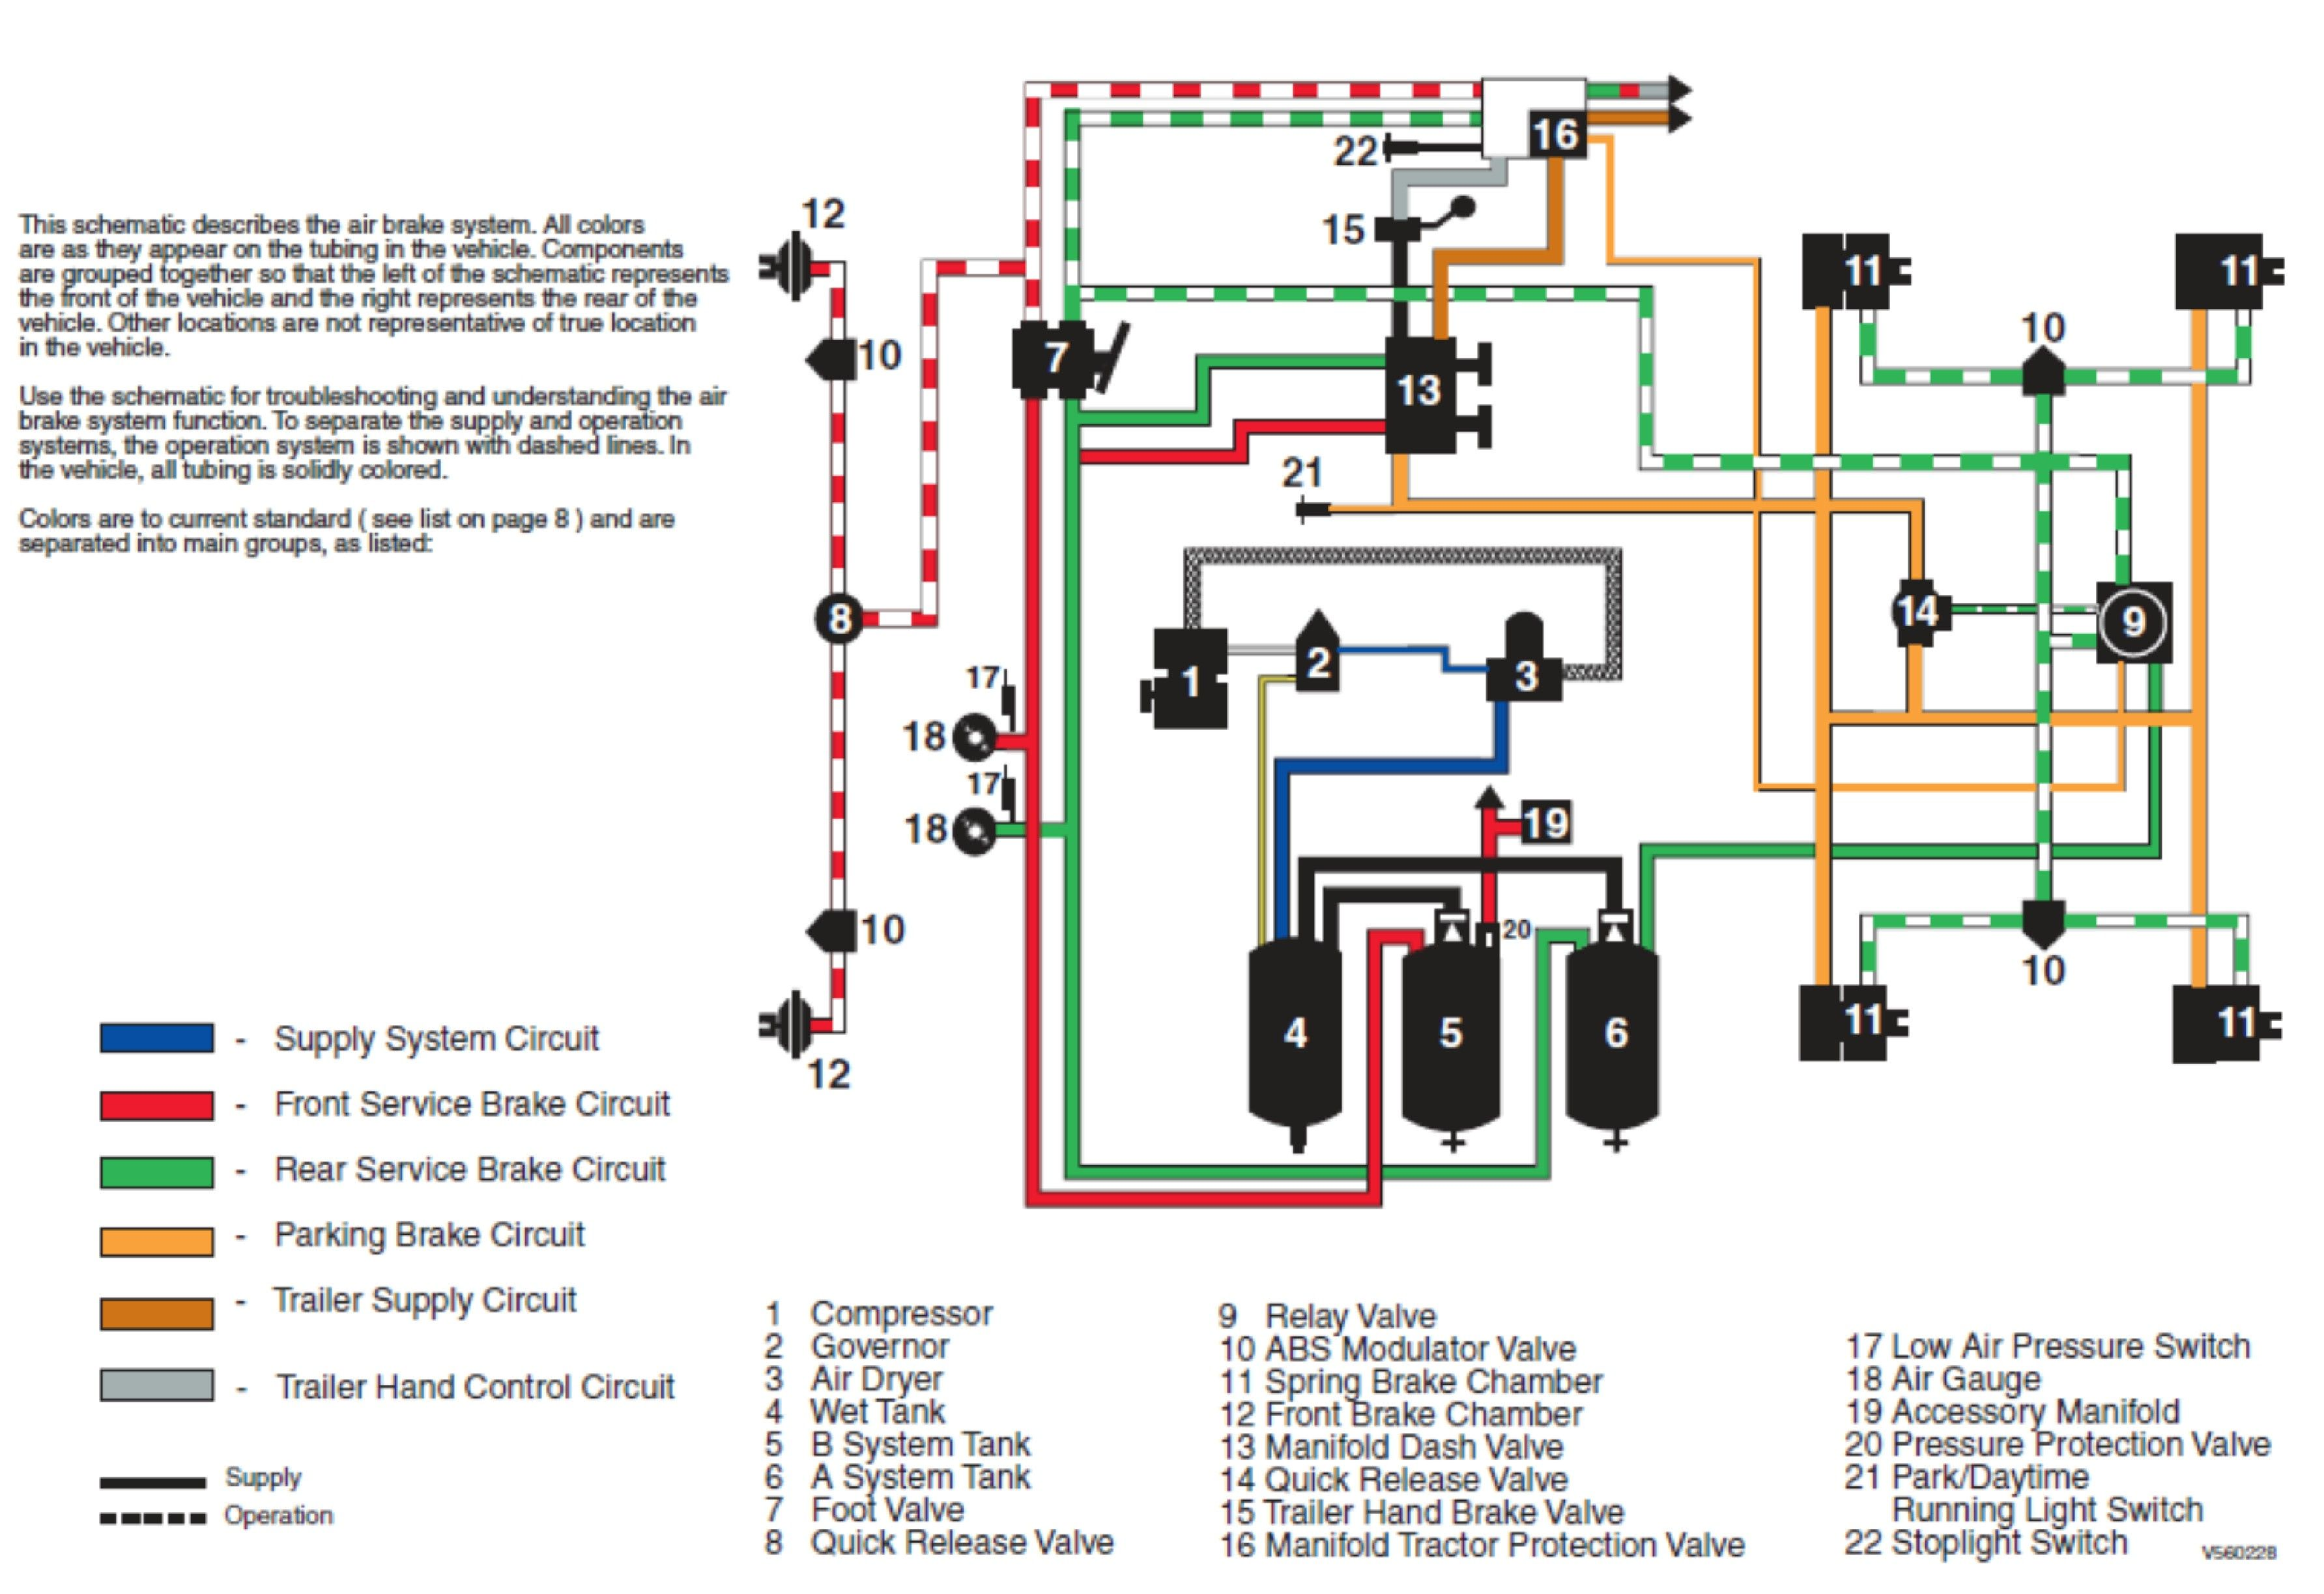 hight resolution of tractor trailer air brake system diagram air brake hyundai santa fe fuse box layout hyundai santa